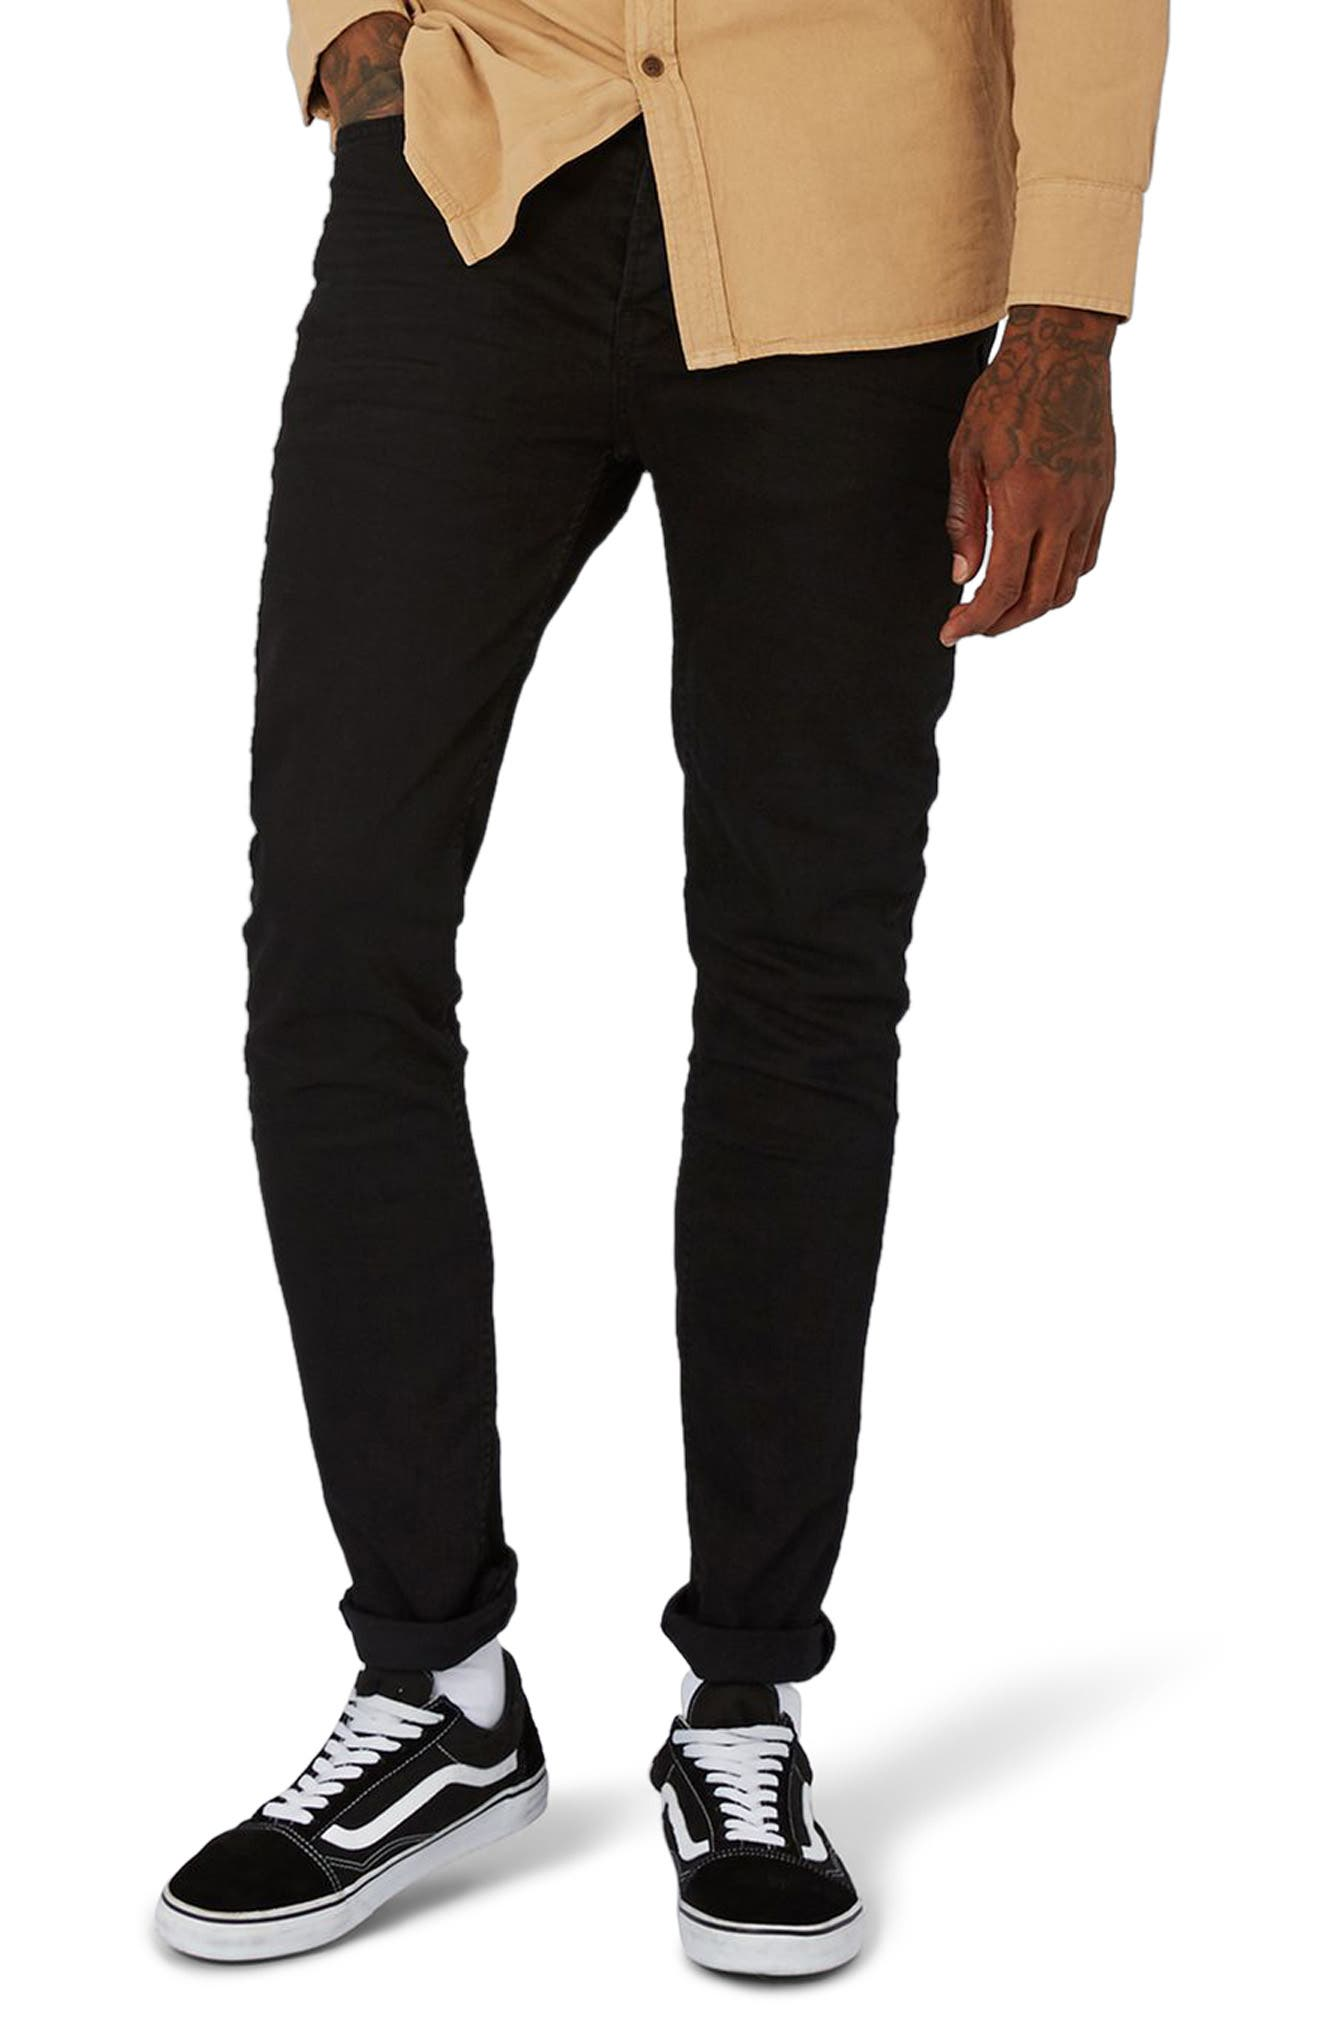 Topman Overdyed Stretch Skinny Jeans